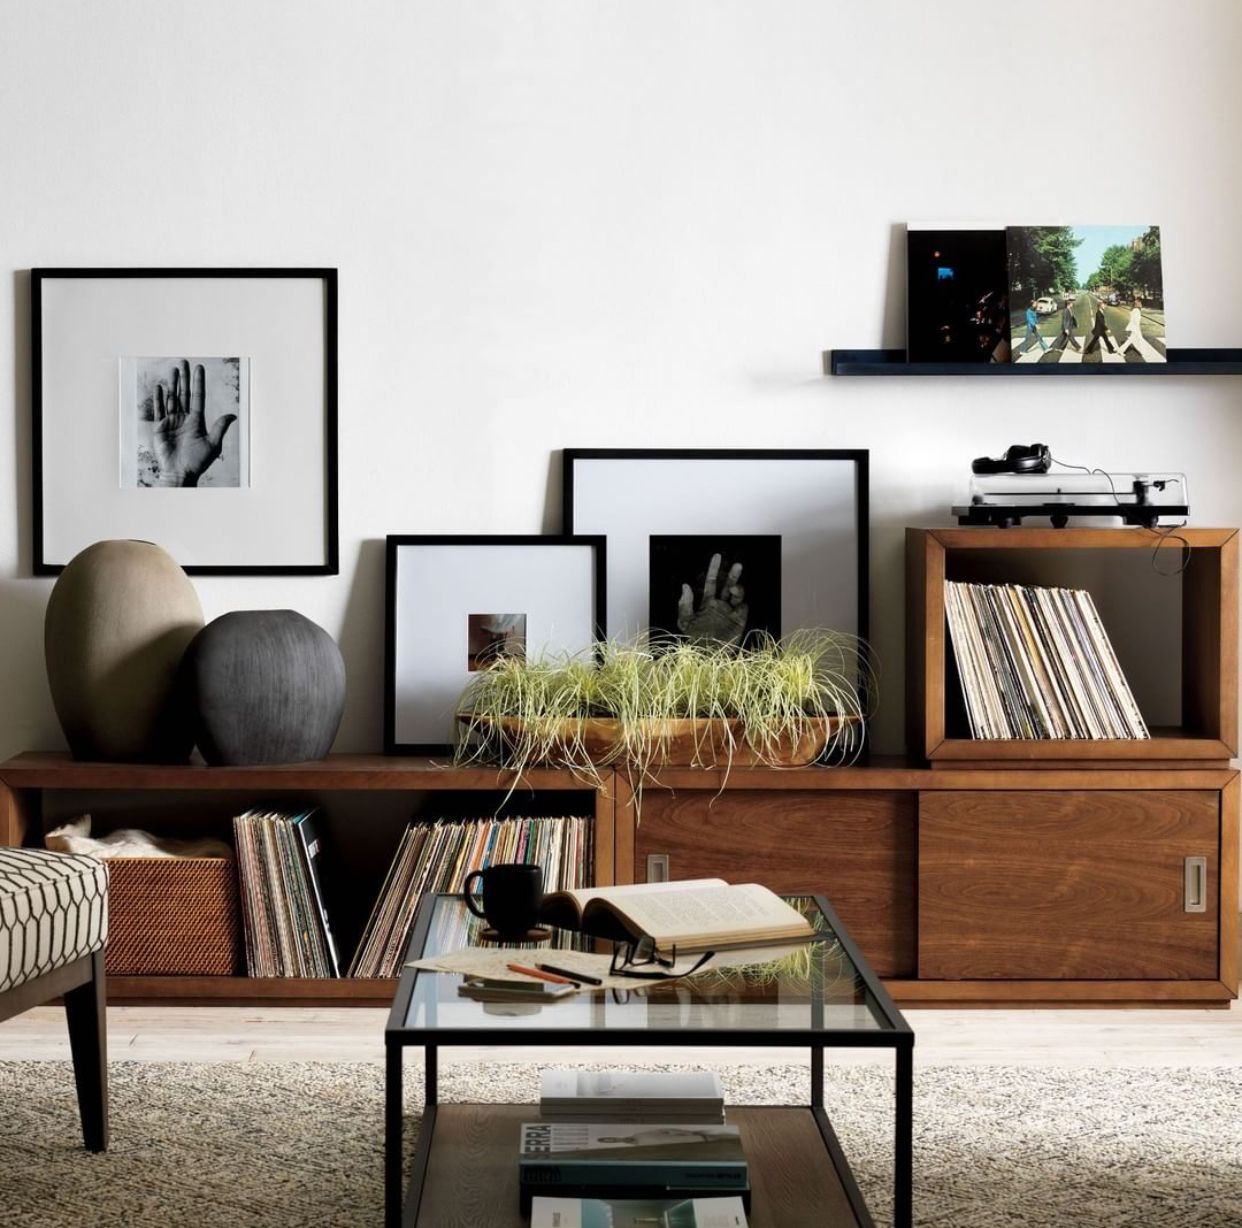 Designed by william eastburn the aspect walnut sliding door storage unit is a crate and barrel exclusive